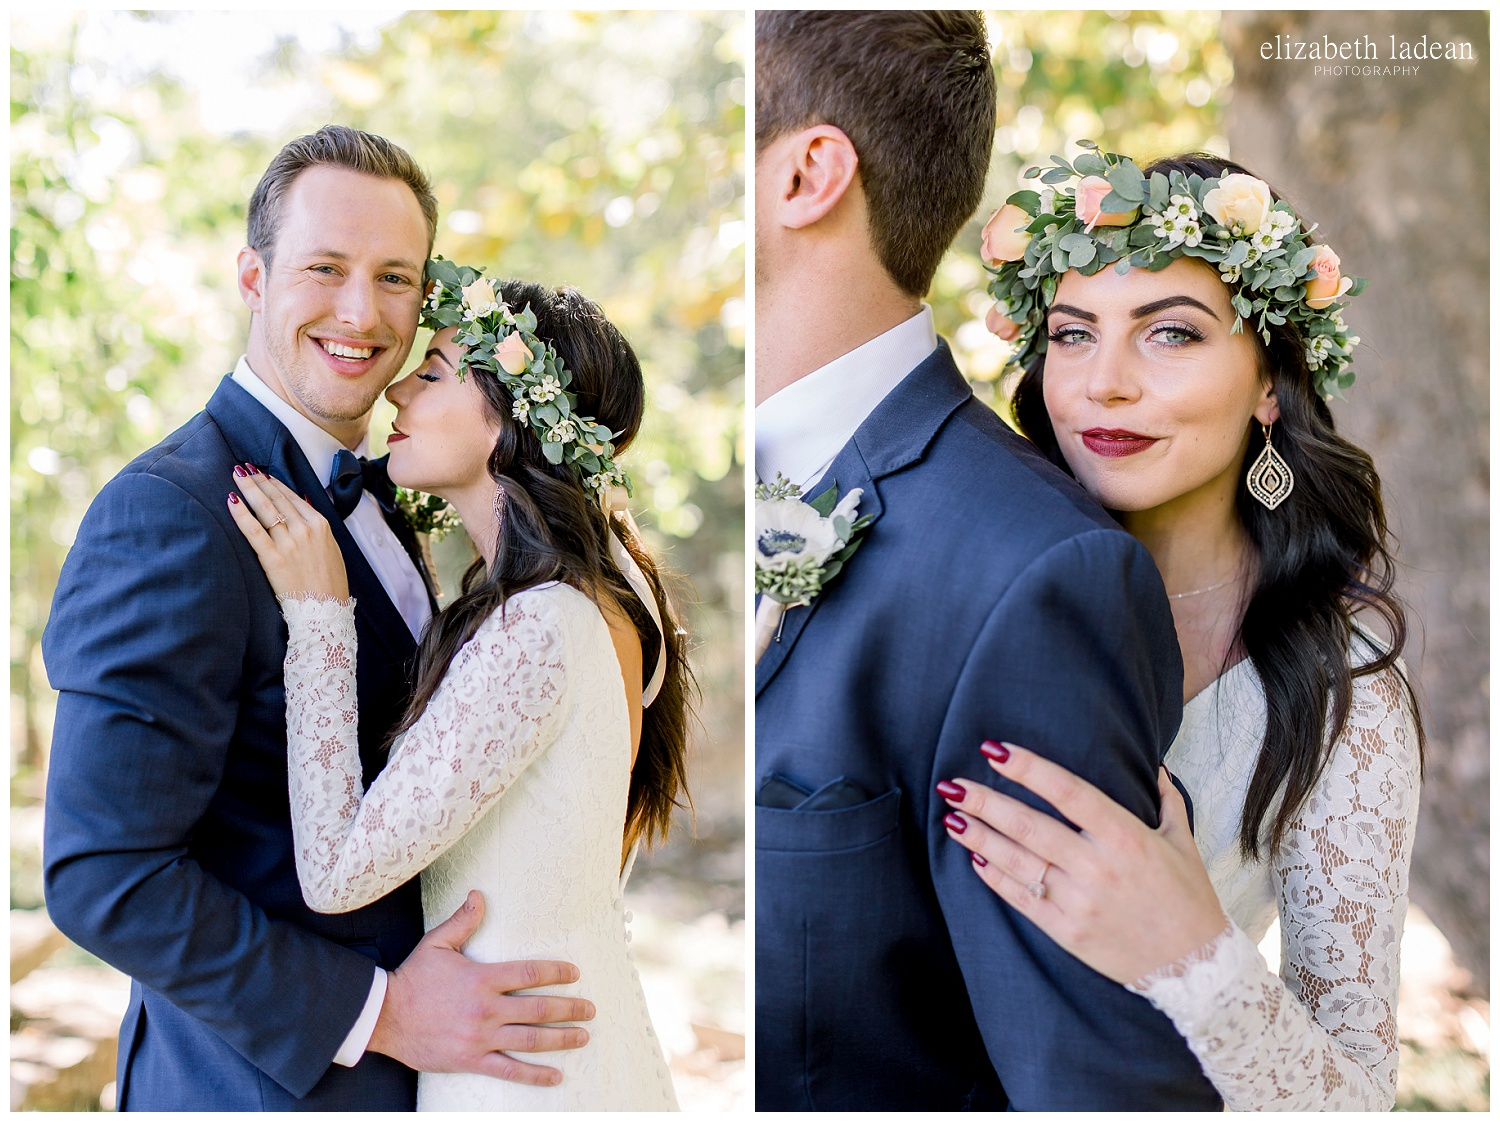 Willow-Creek-Blush-and-Blues-Outdoor-Wedding-Photography-S+Z2018-elizabeth-ladean-photography-photo_0543.jpg